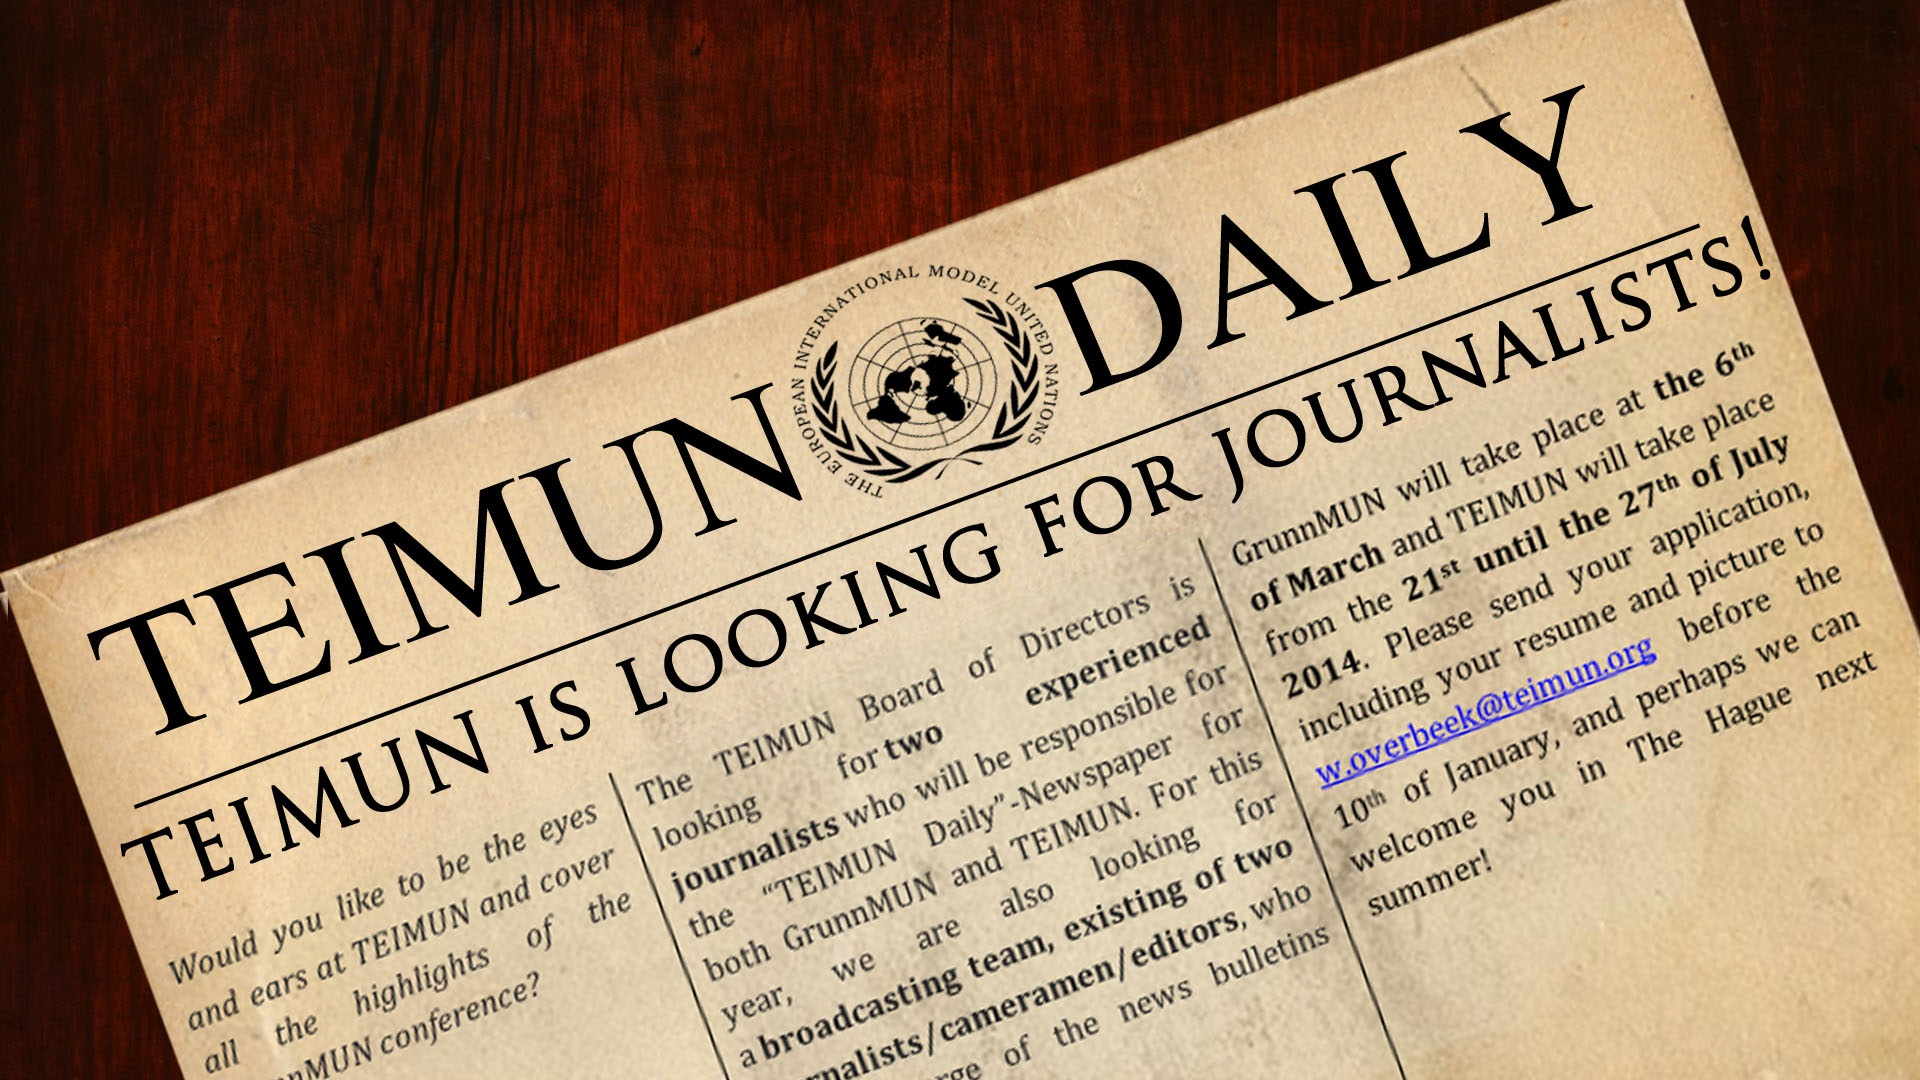 TEIMUN is looking for journalists!